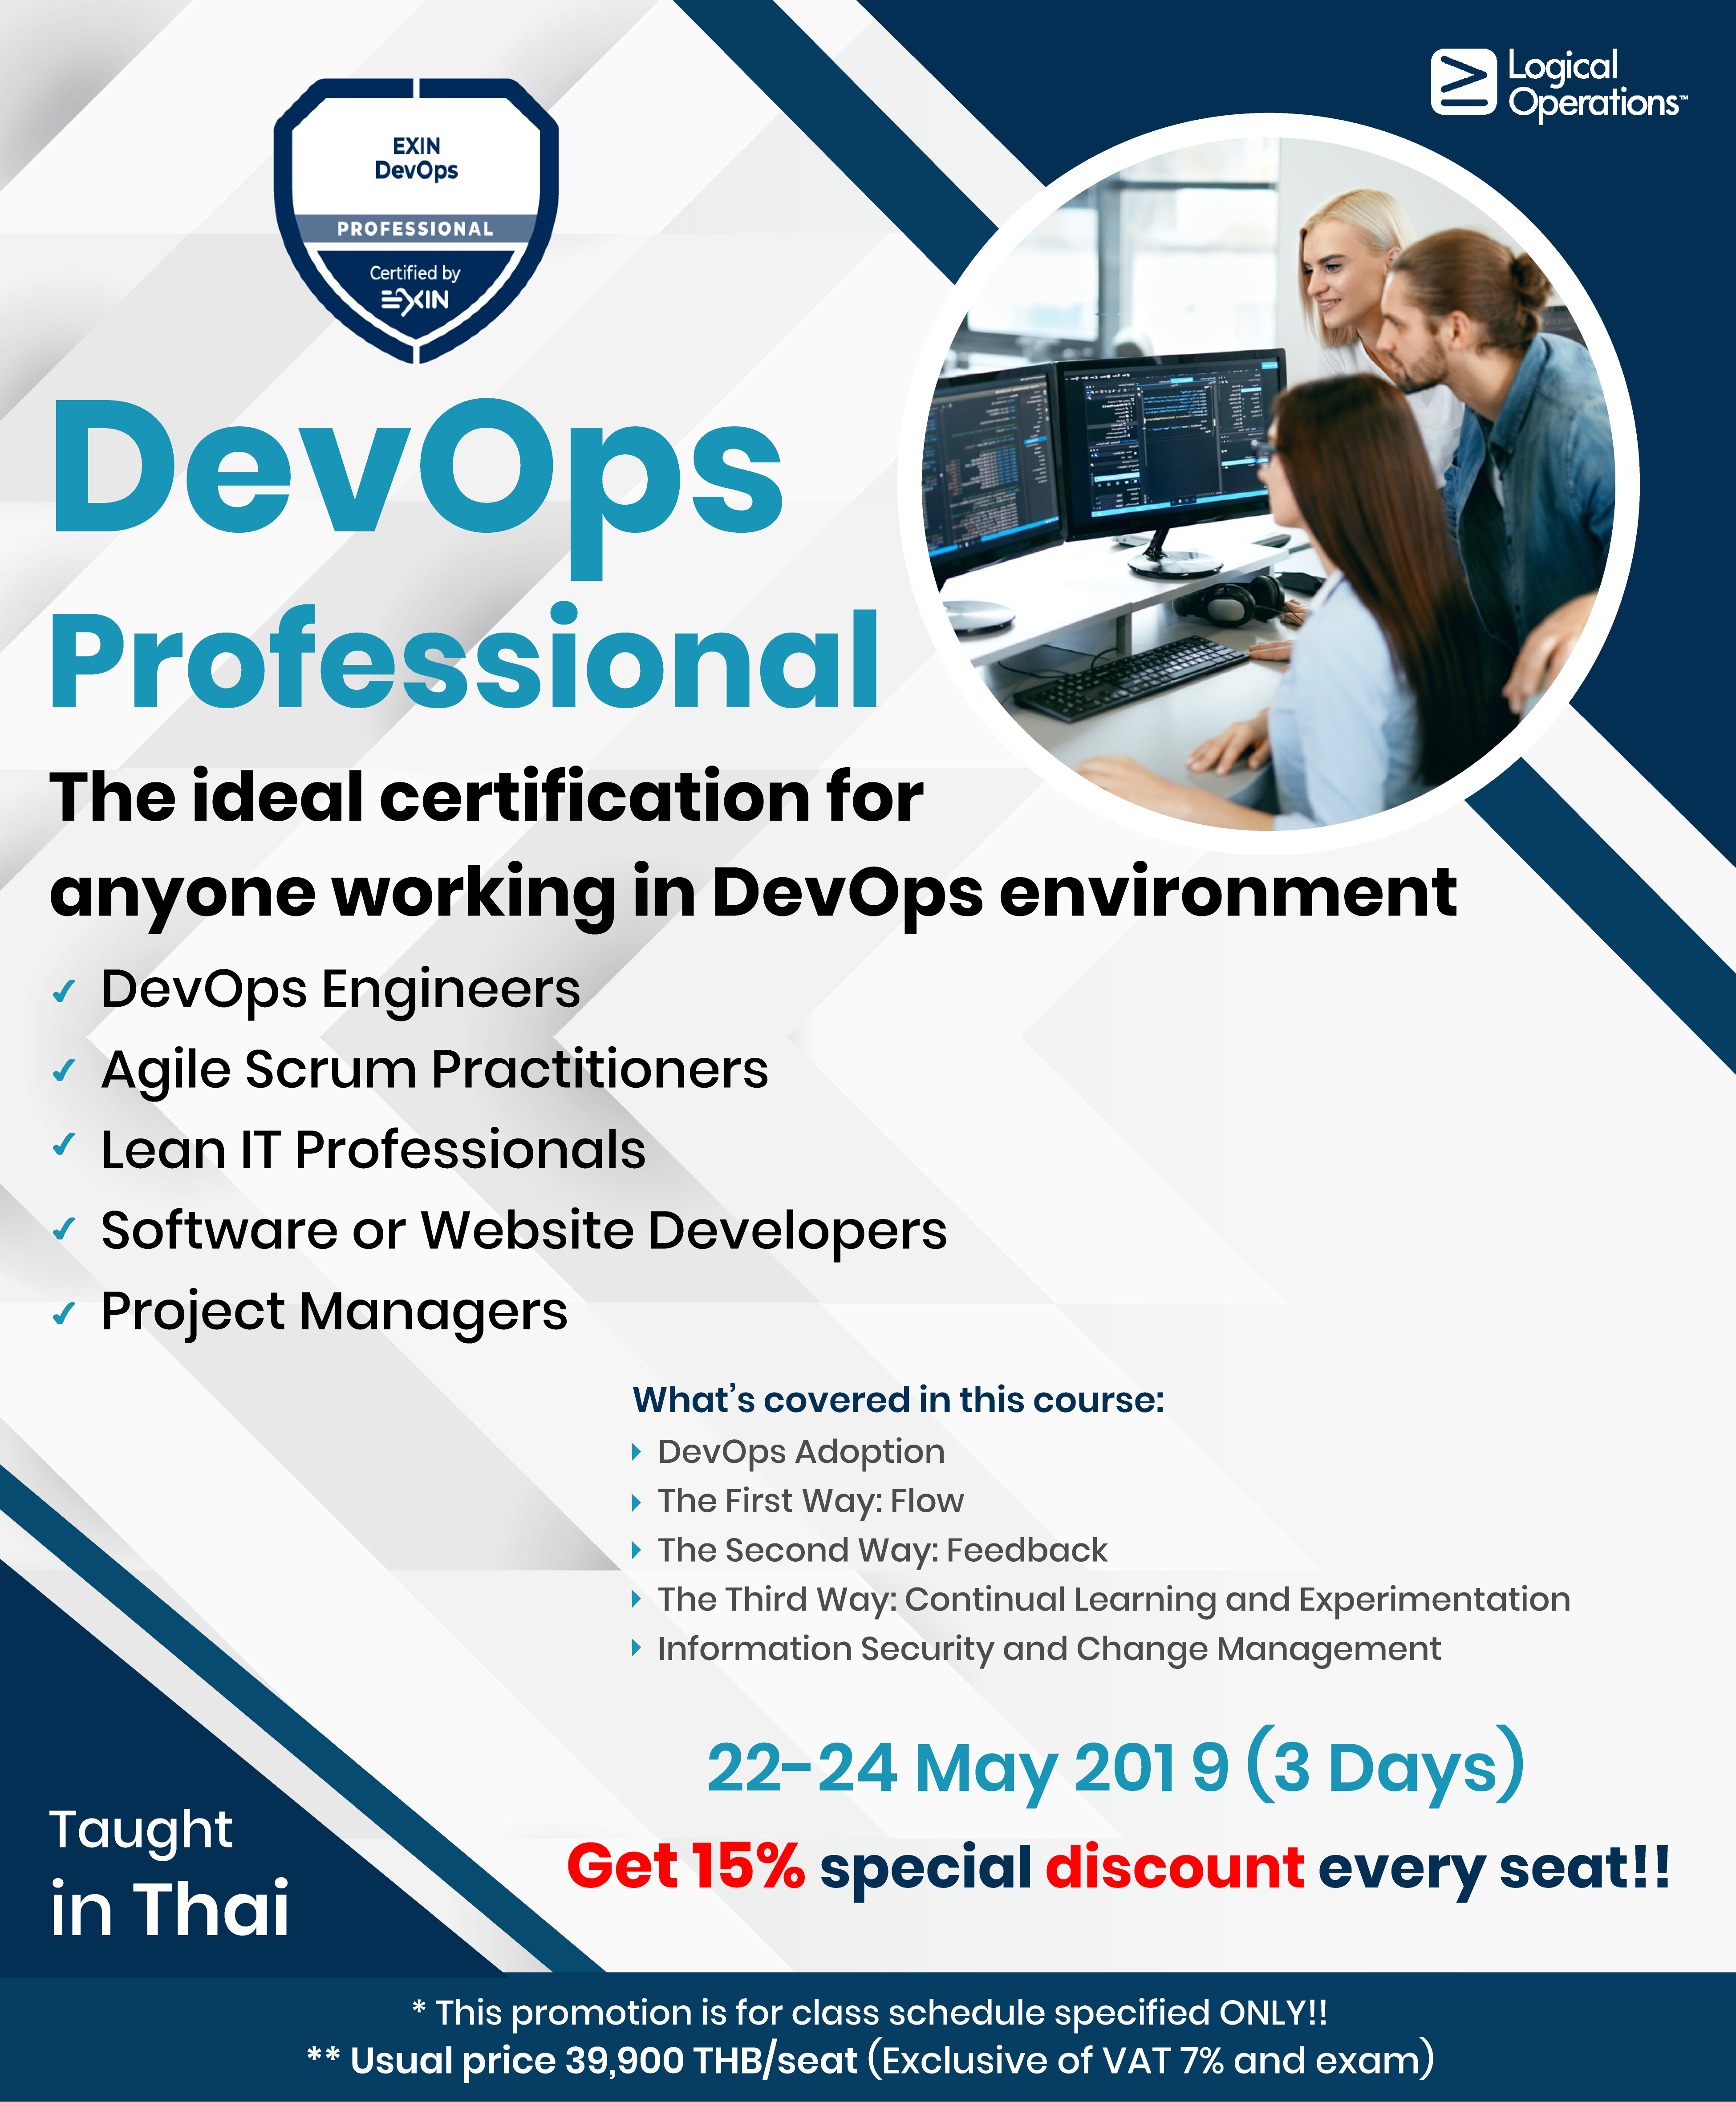 DevOps Professional - The ideal certification for anyone